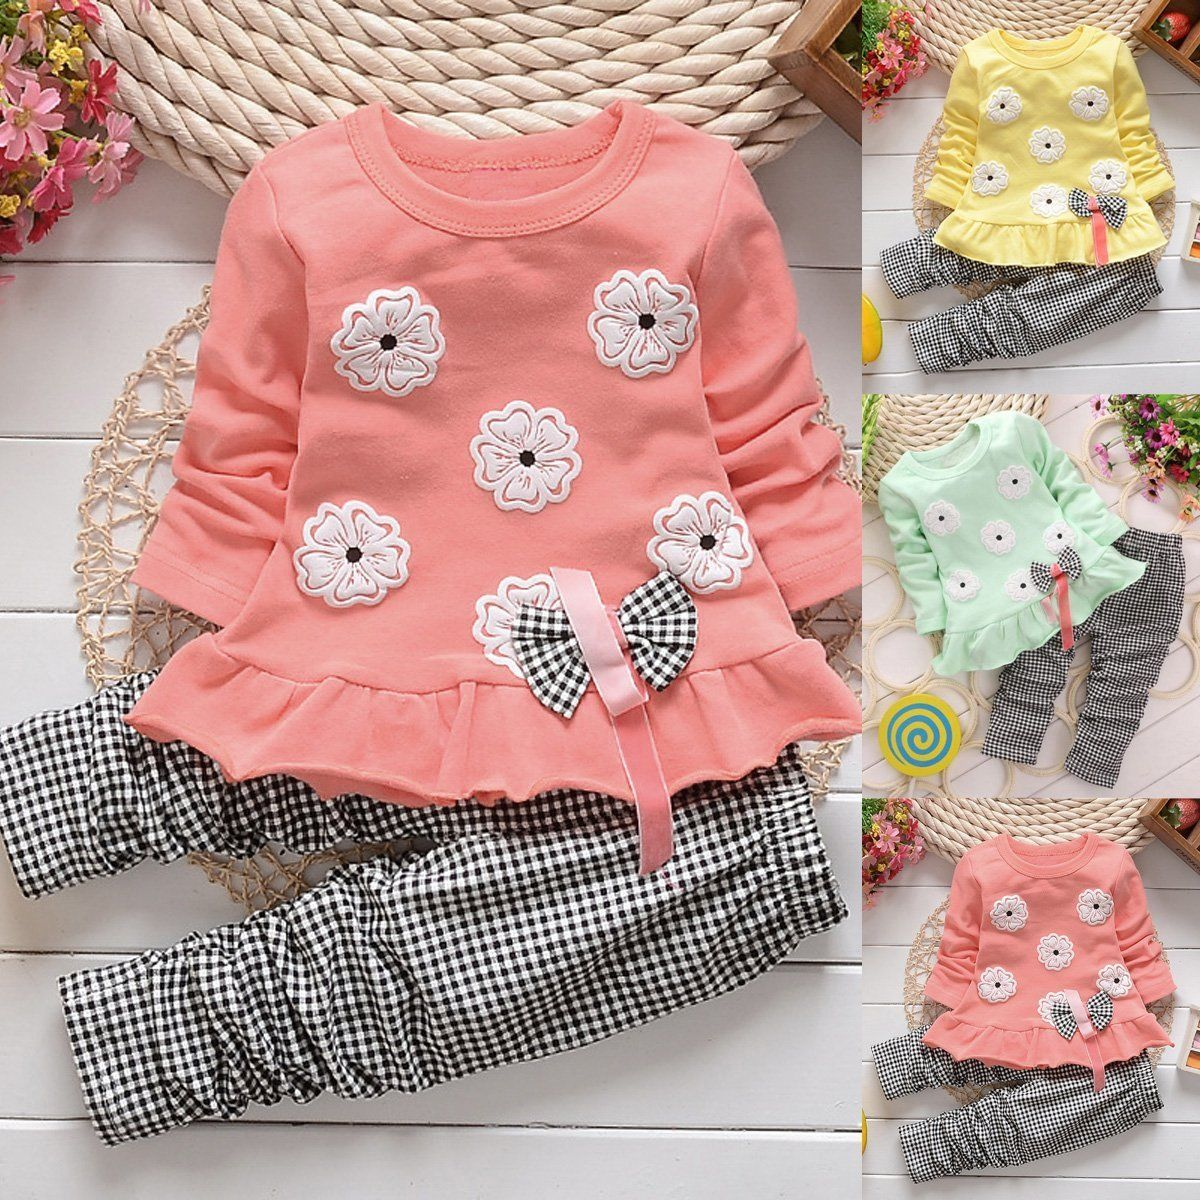 042b21fe21d9 2PCS Toddler Kids Baby Girls Outfit Bowknot Dress T-shirt Tops+Pants ...